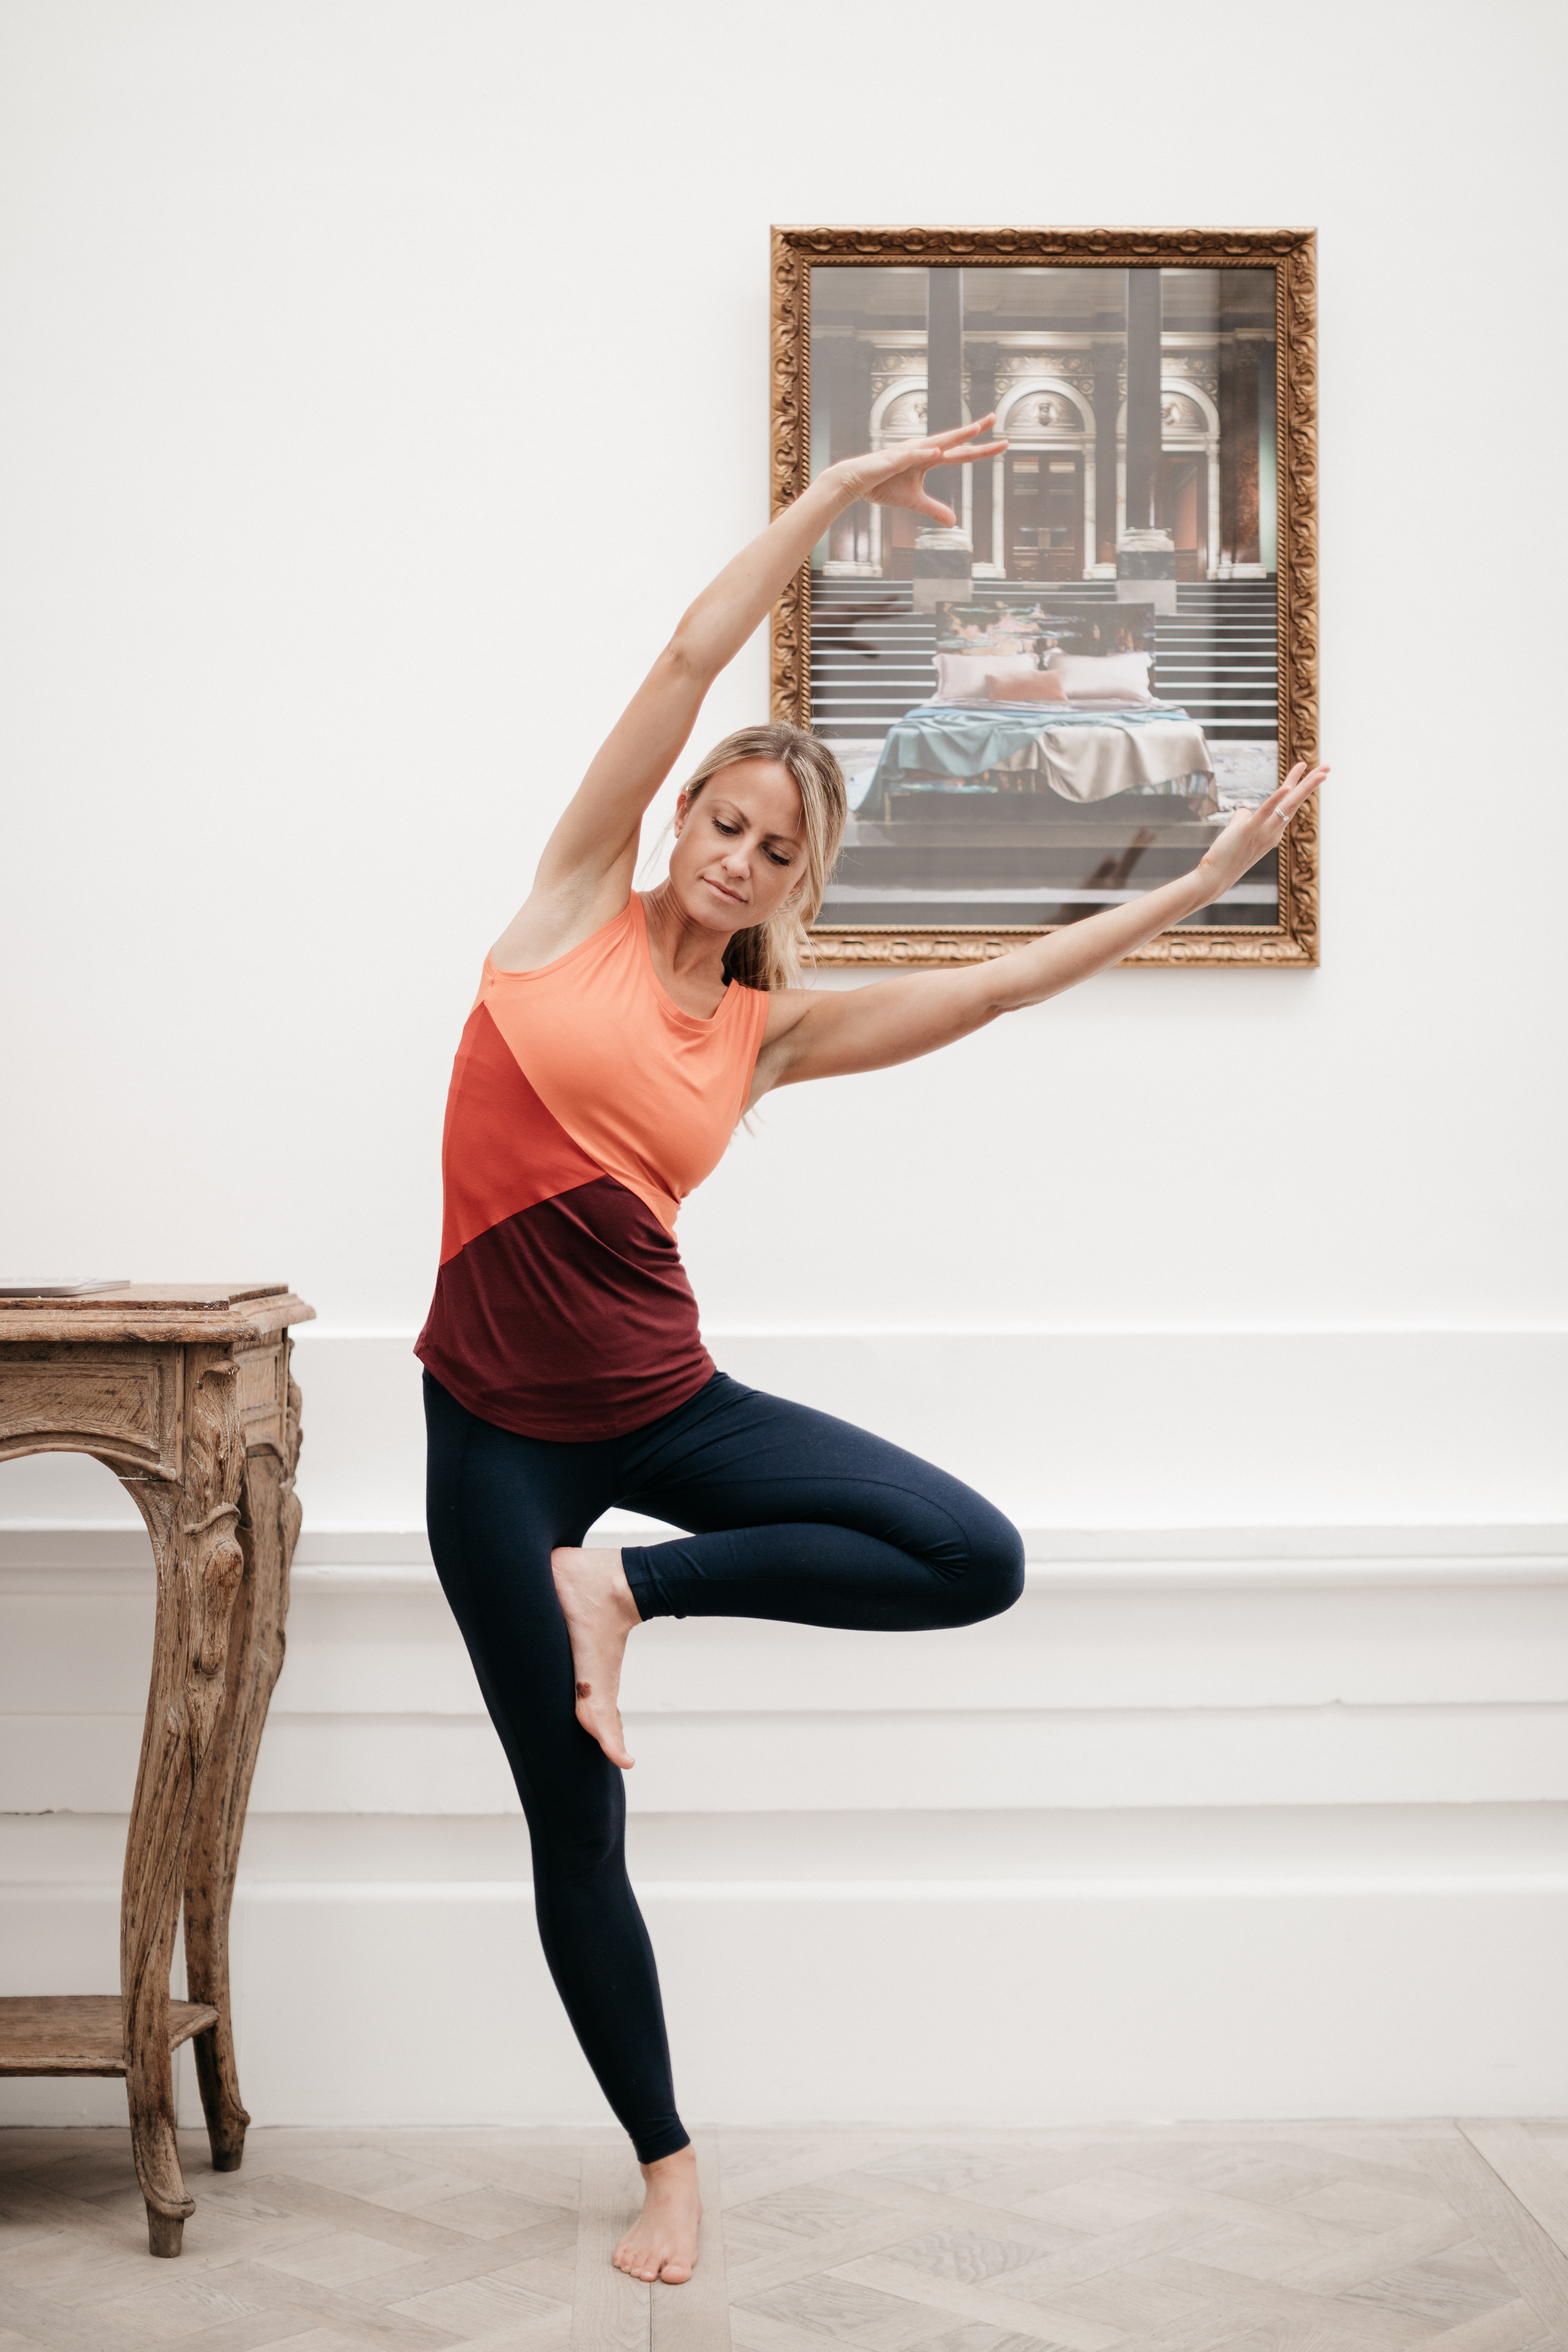 Yoga Teacher holding Tree Pose wearing Asquith bamboo yoga top and bamboo yoga pants.